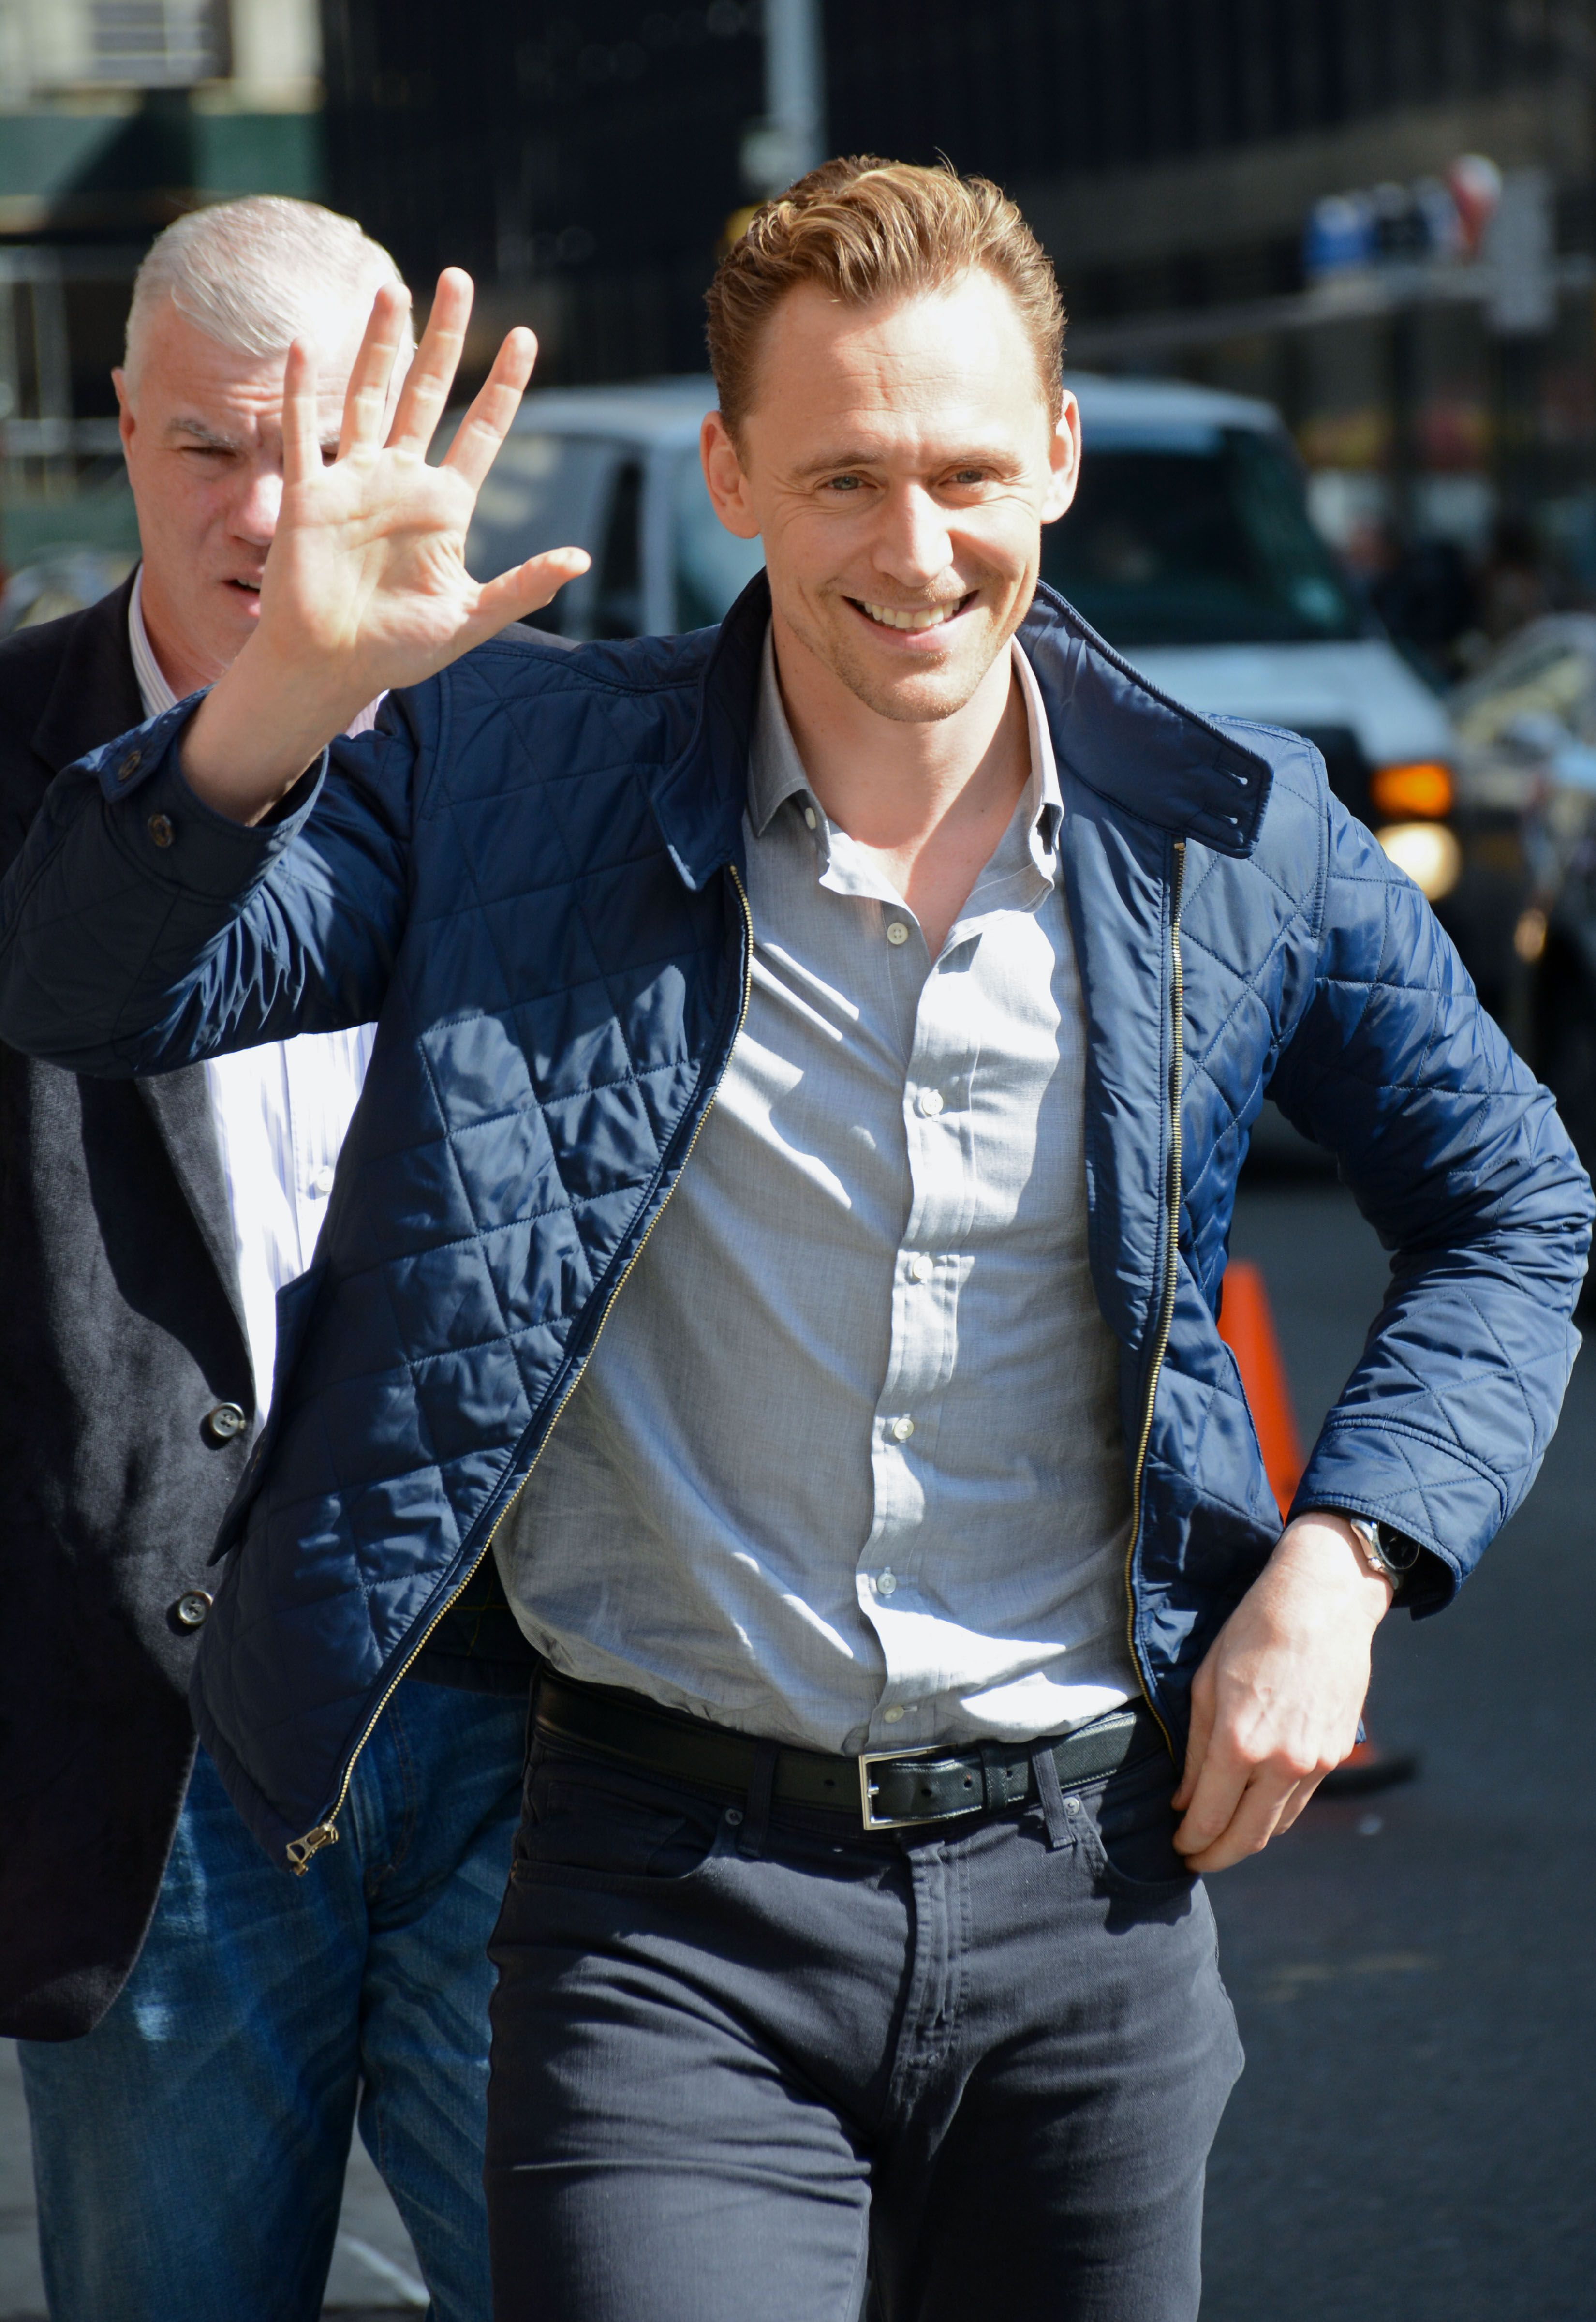 "Tom Hiddleston enters the 'Late Show with Stephen Colbert' studios, NYC to promote ""I Saw The Light"" 28.3.2016 From http://tw.weibo.com/torilla/3958275920321528"